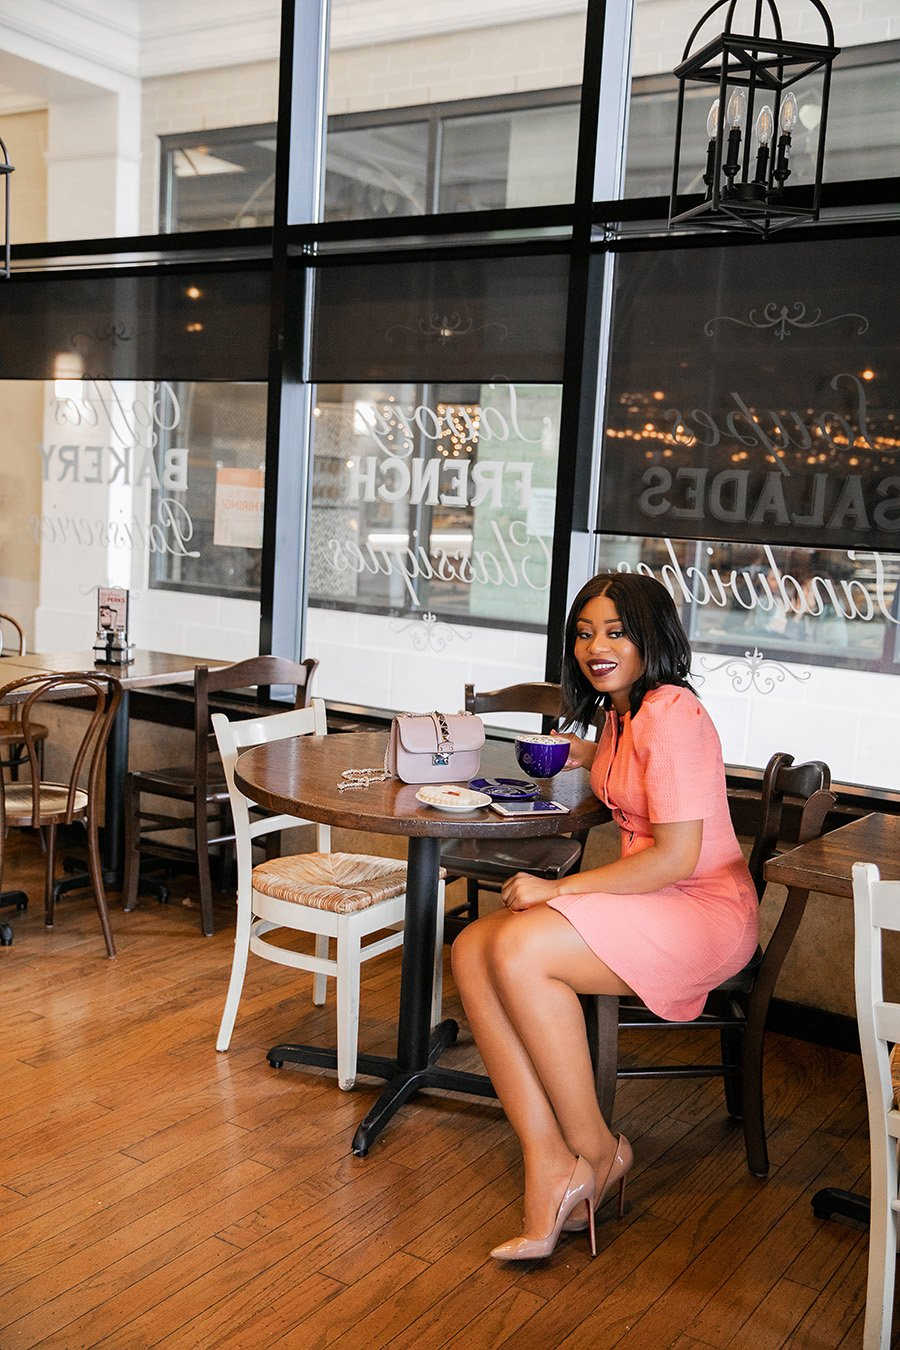 stella-adewunmi-of-jadore-fashion-blog-shares-tips-to-work-from-home-with-kids-around